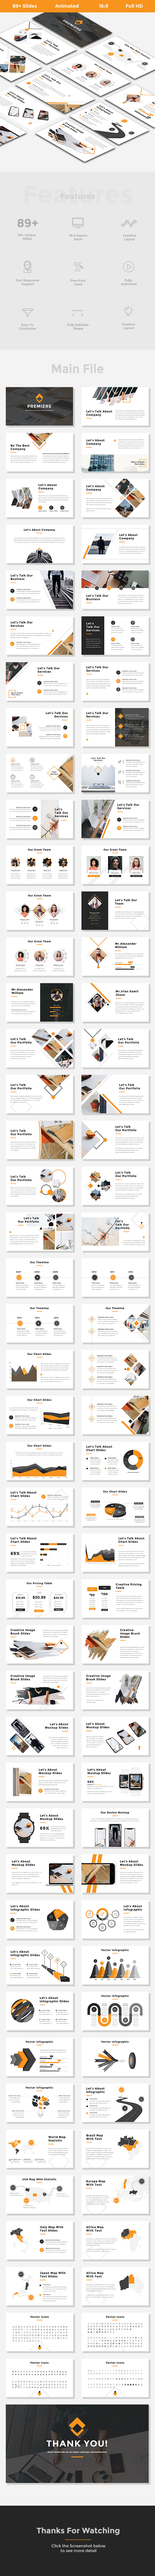 GraphicRiver Premiere Creative & Clean Google Slides Template 21046344